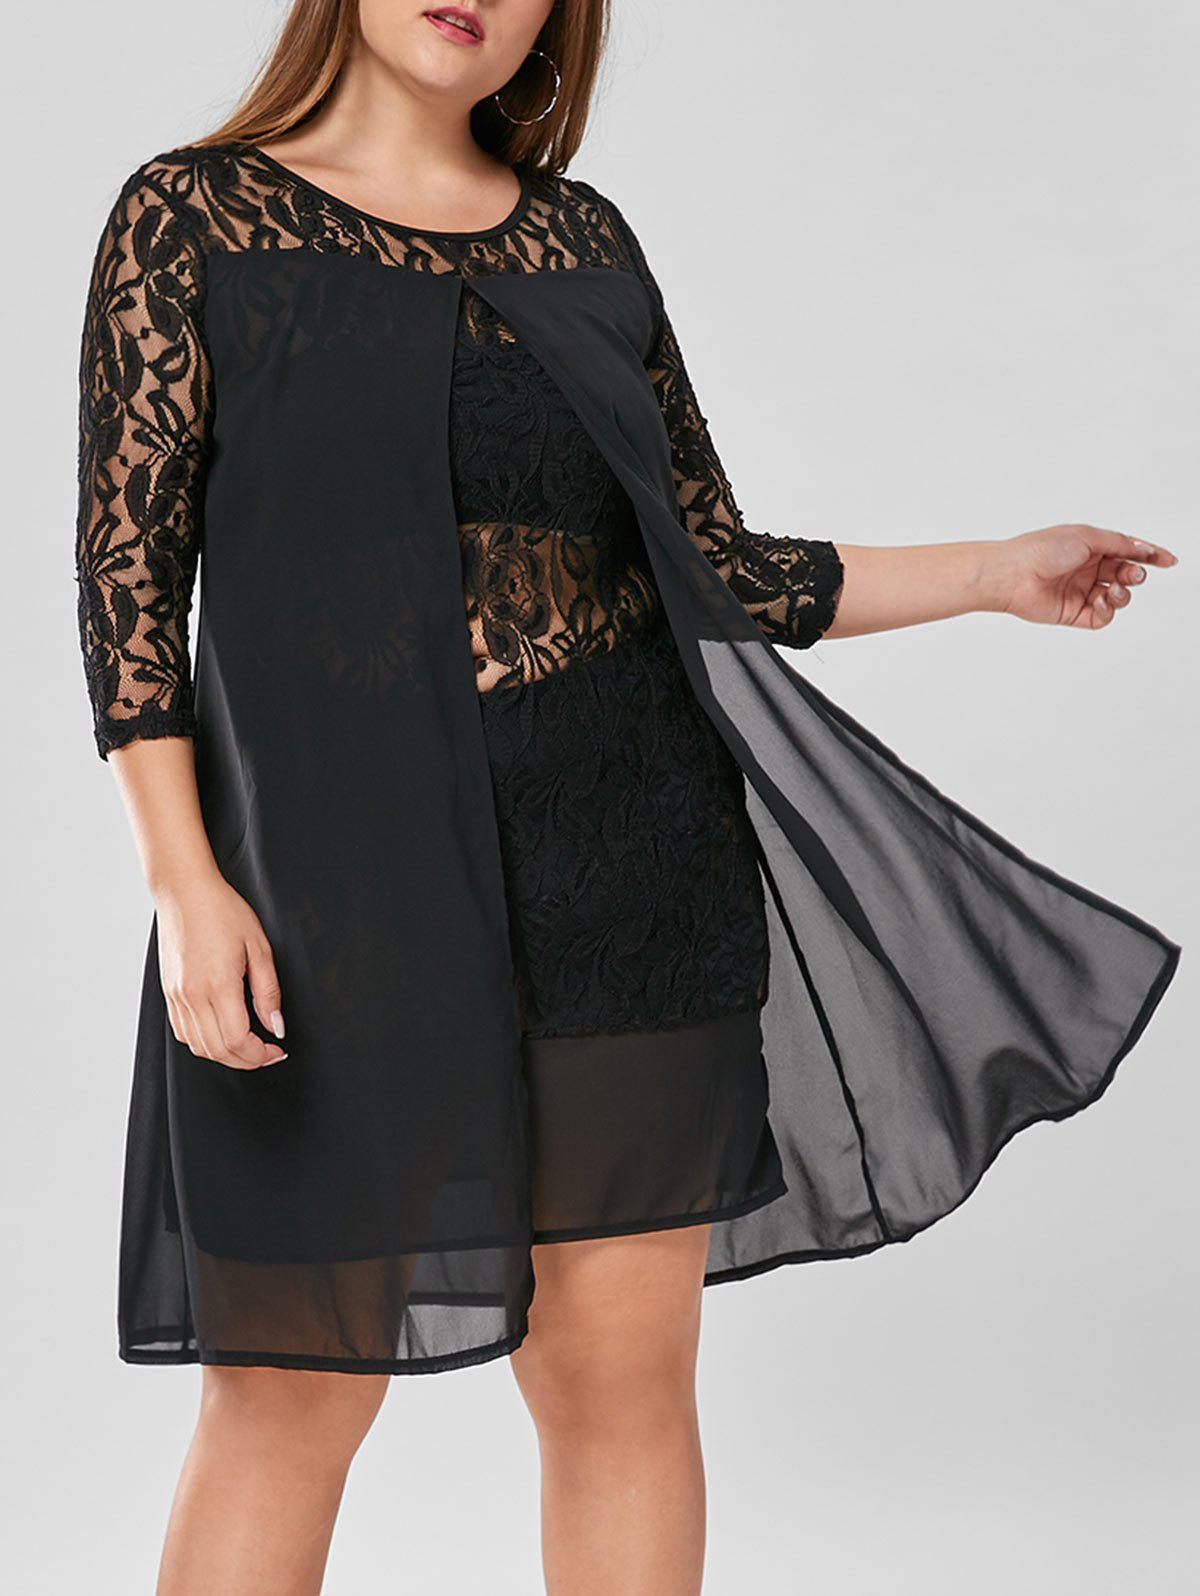 Plus Size Lace Trim Knee Length Dress plus size lace insert knee length dress